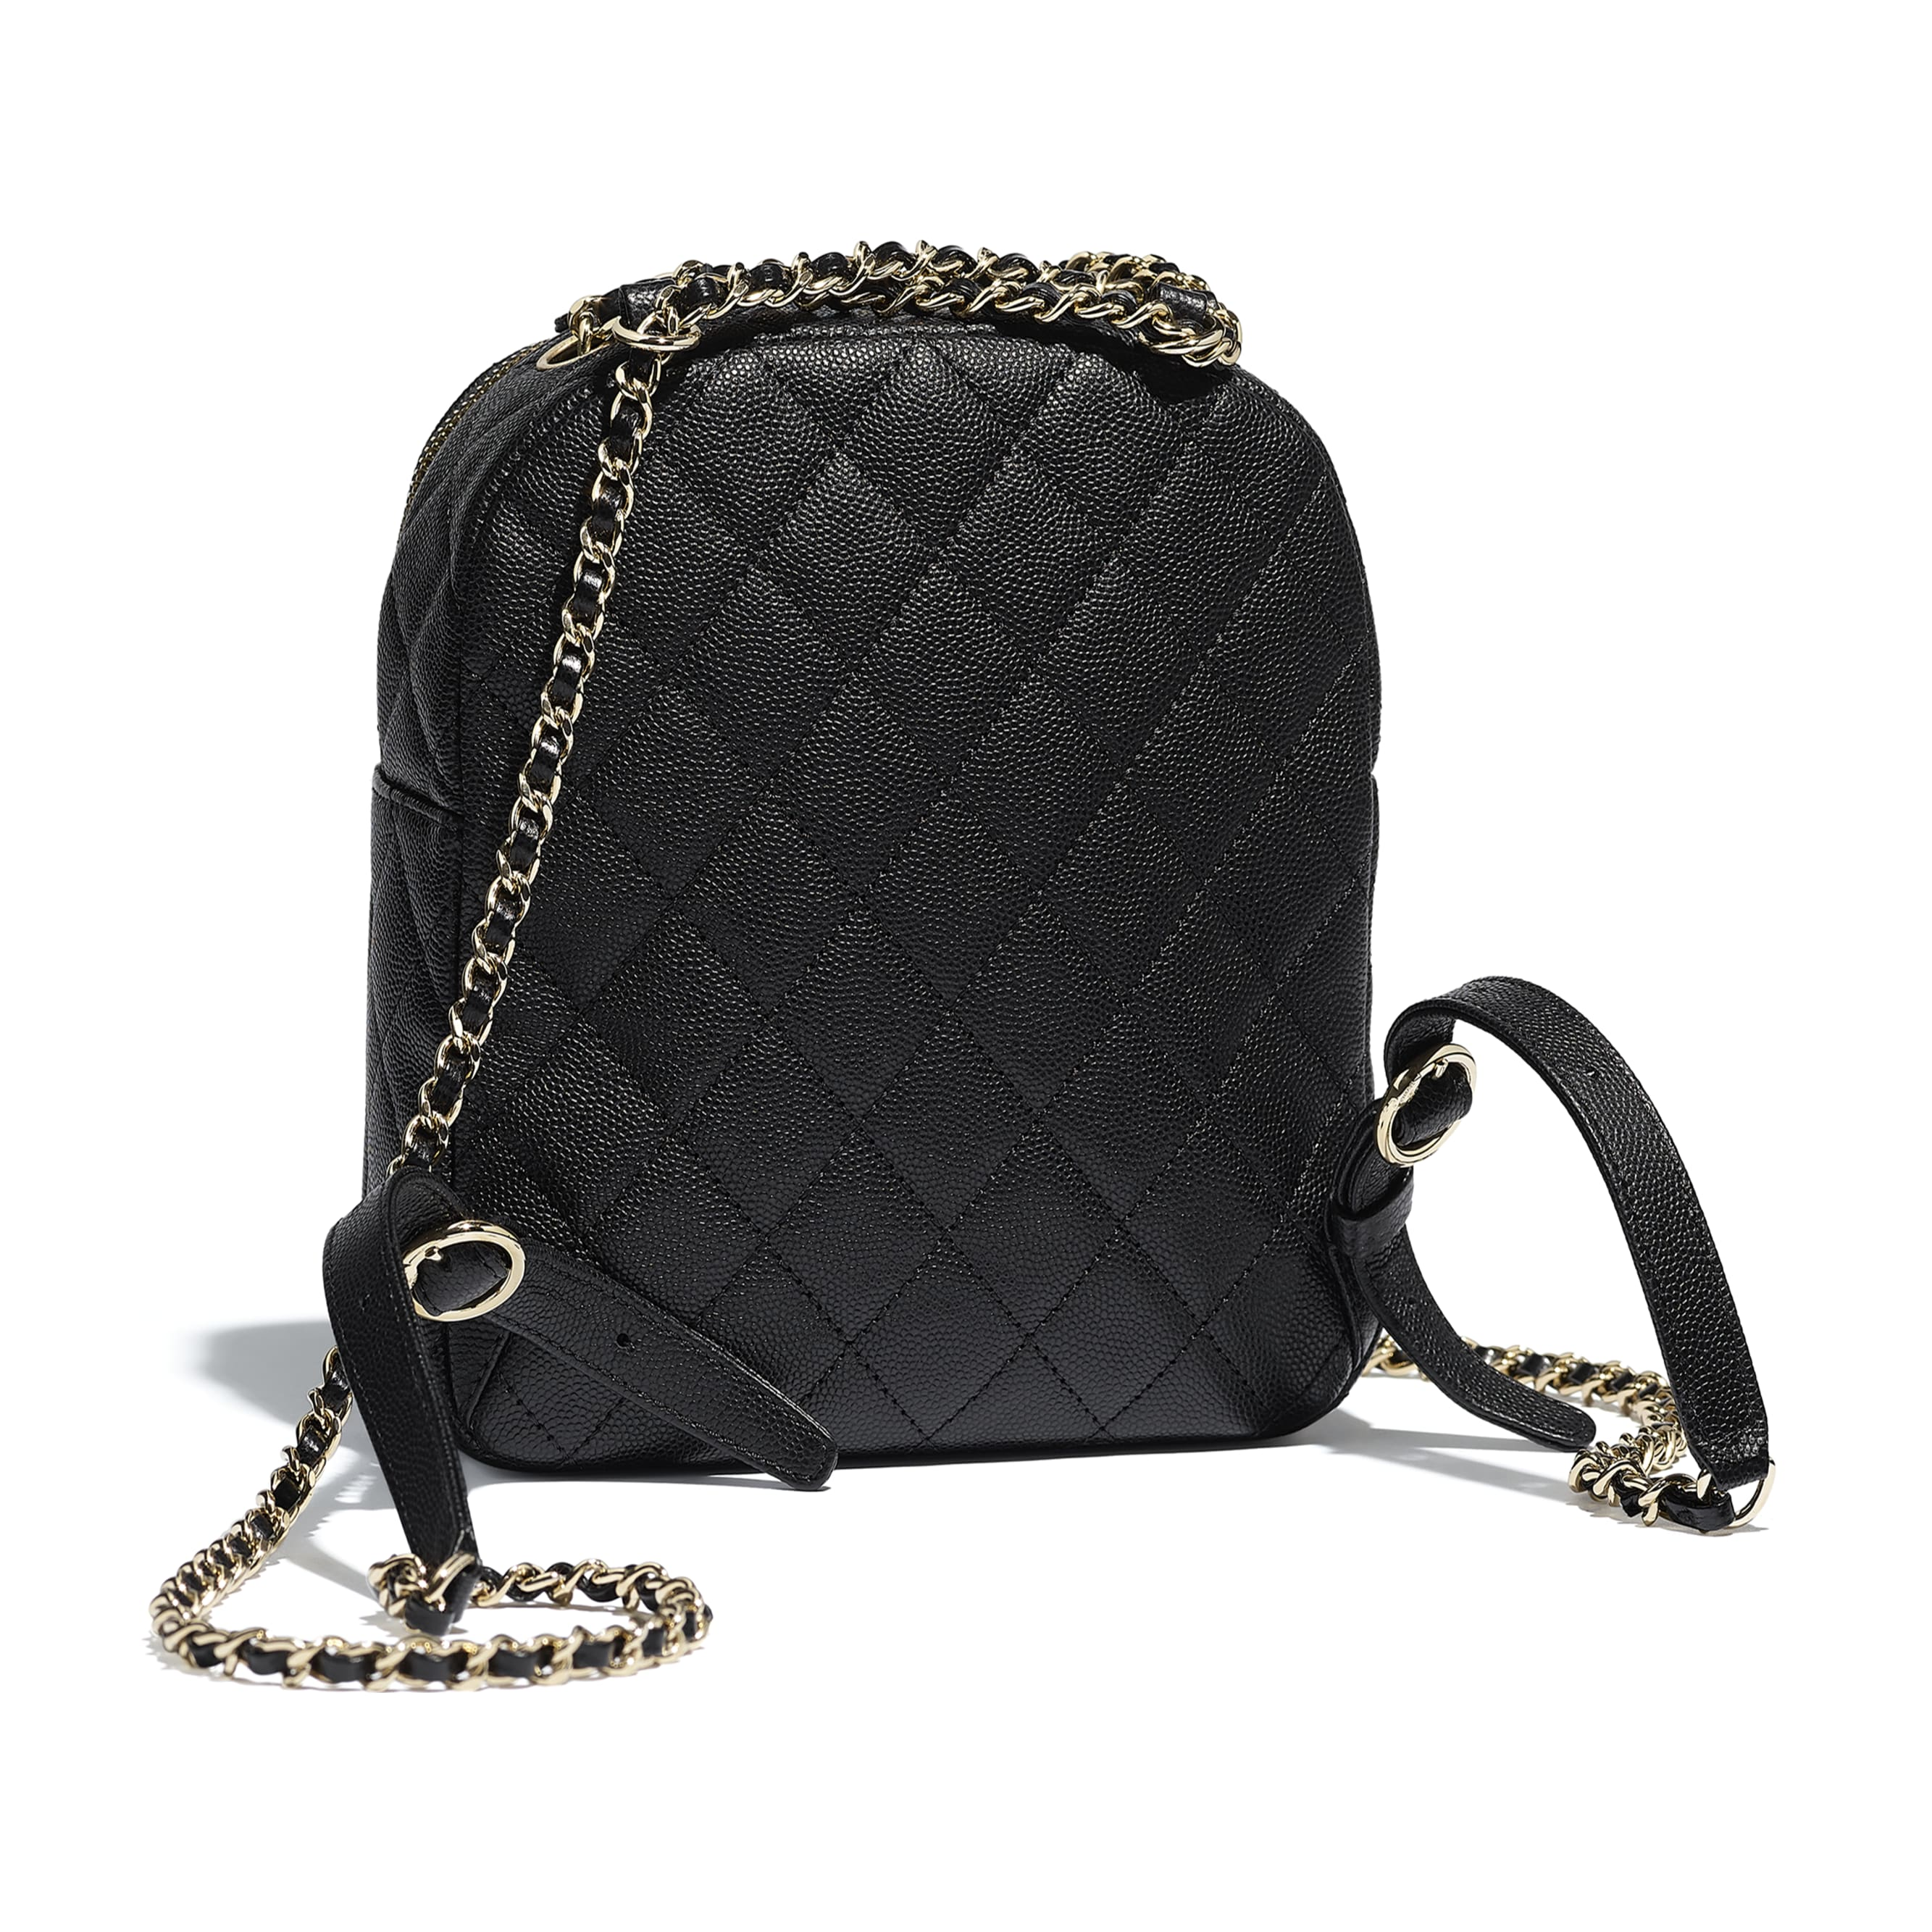 Backpack - Black - Grained Calfskin & Gold-Tone Metal - Alternative view - see standard sized version